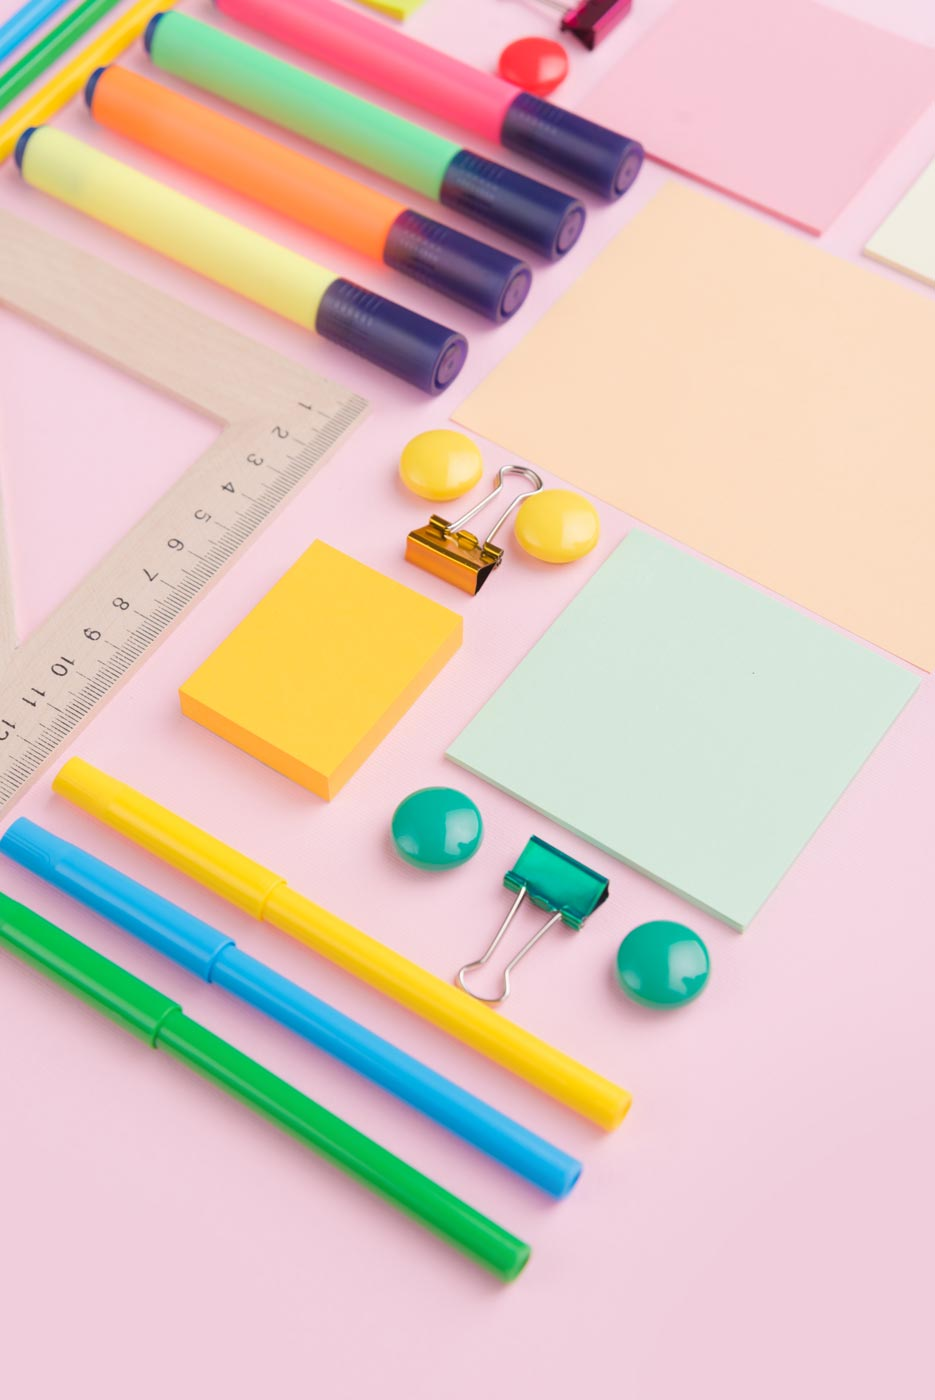 Office Supplies on a Desk